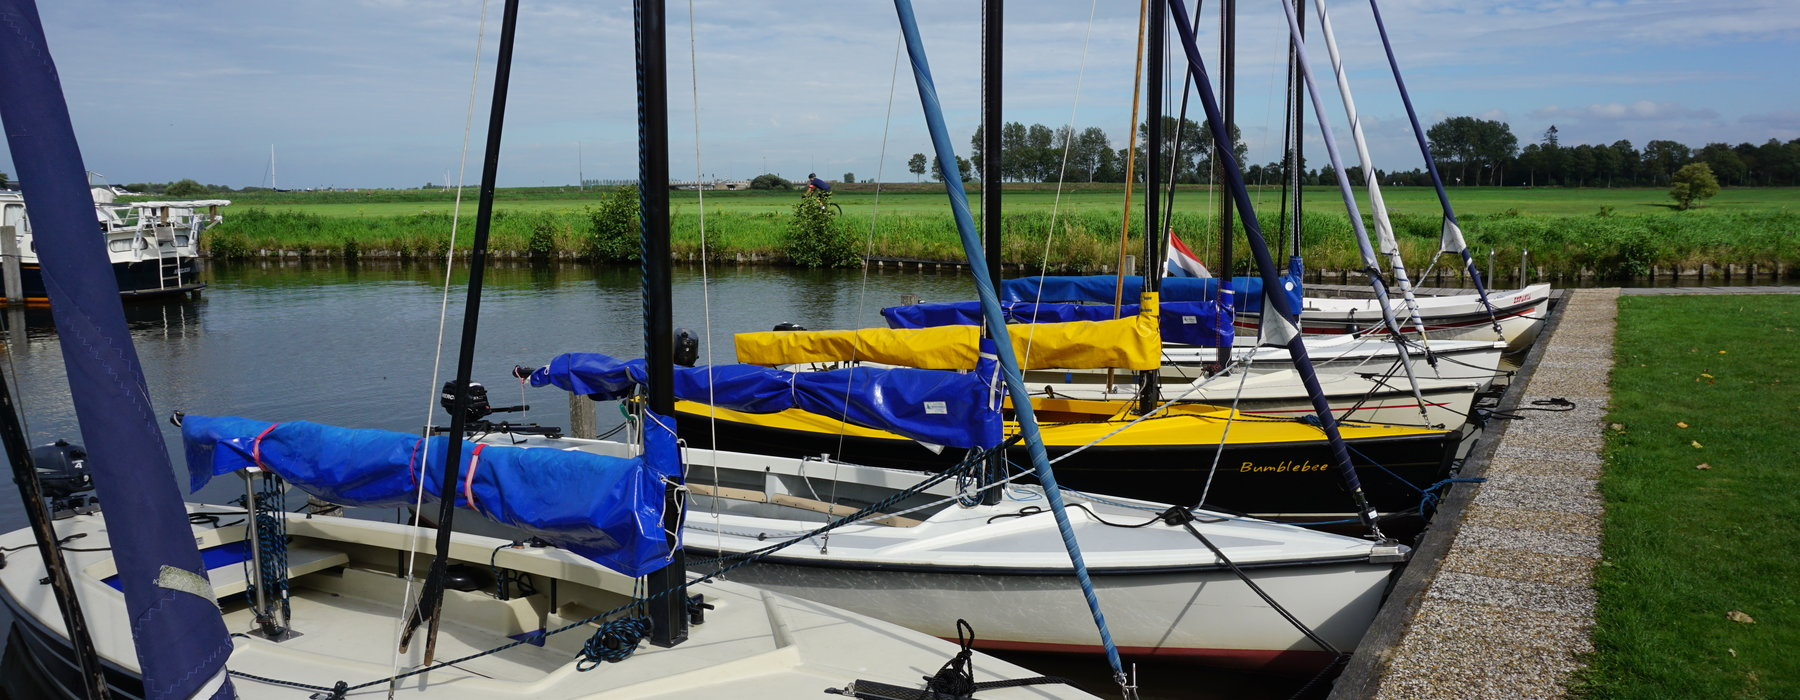 Zeilboot huren in Friesland